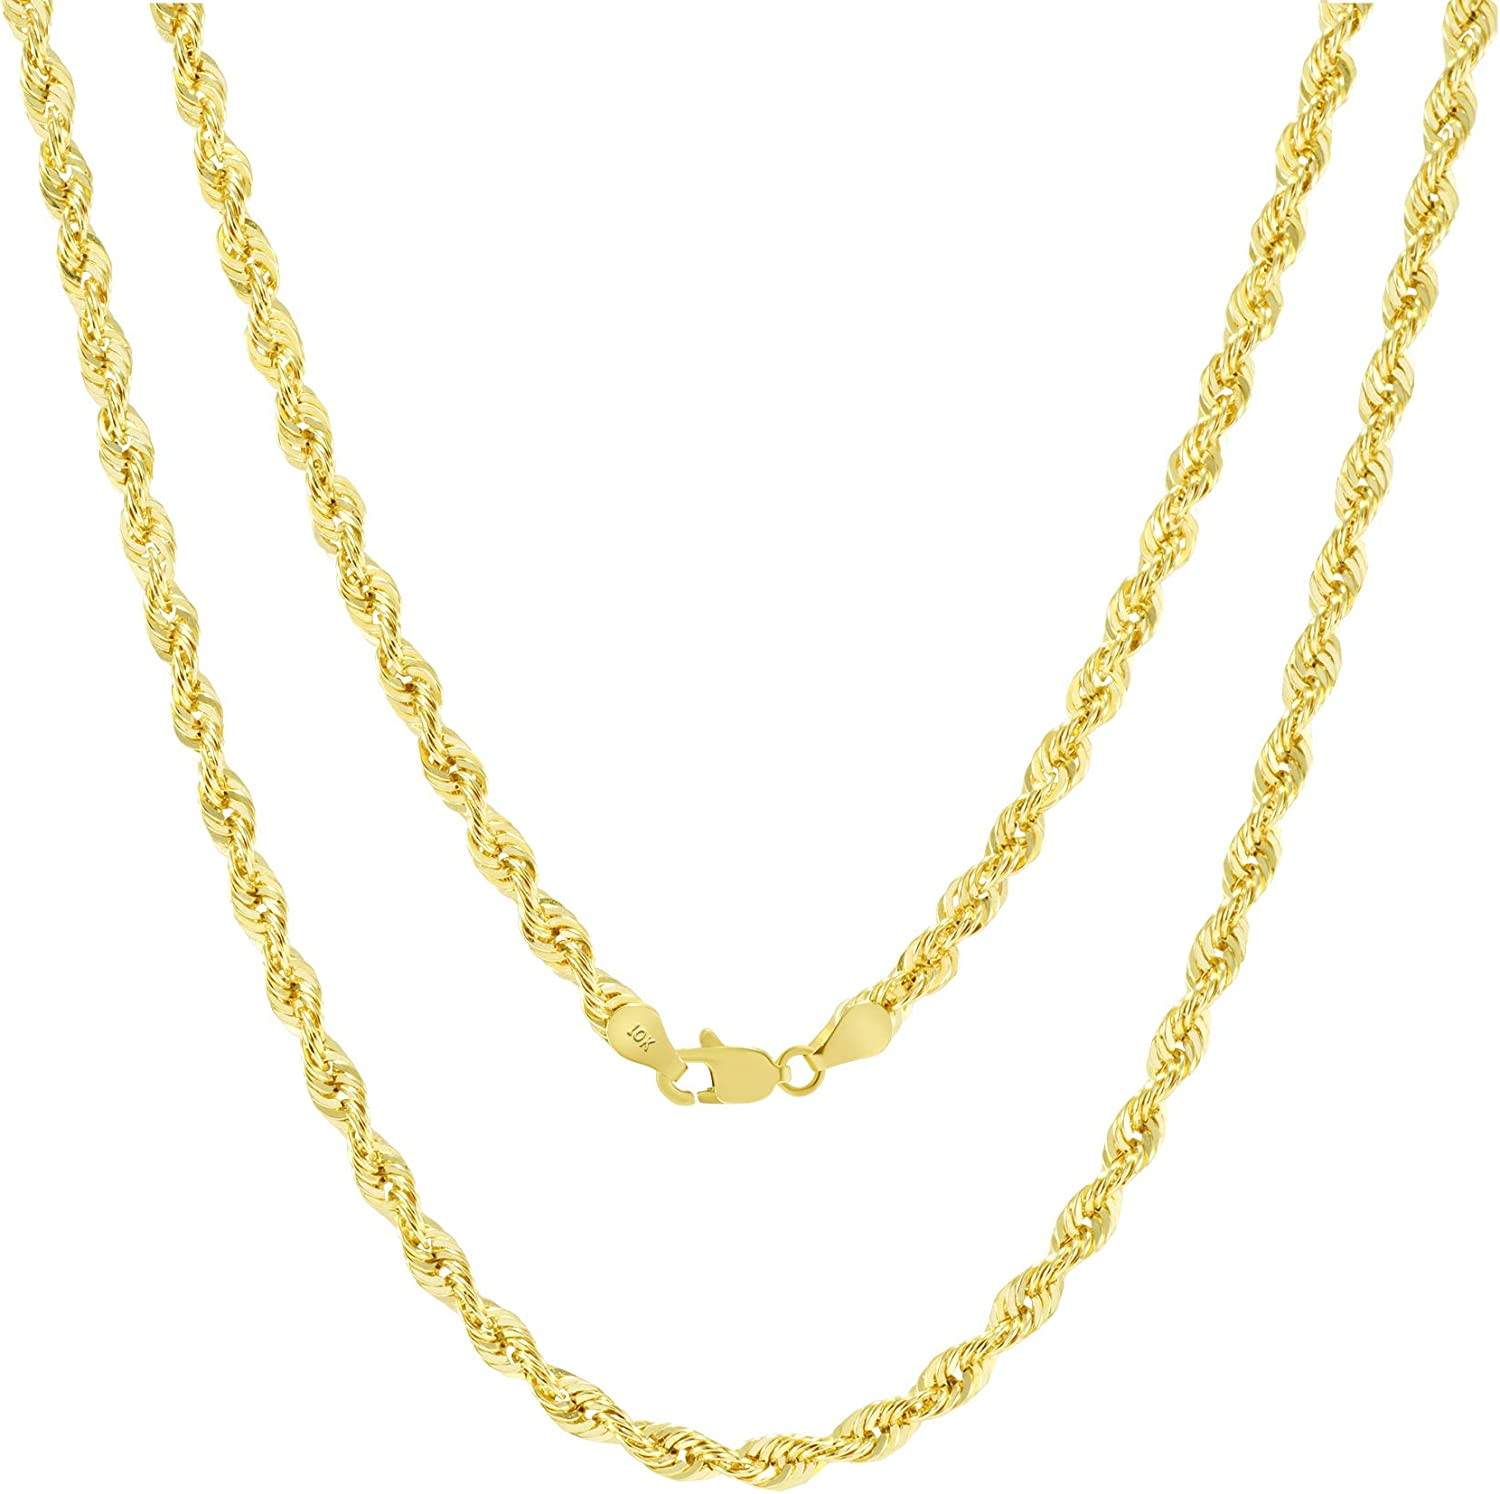 Nuragold 10k Yellow Gold 4mm Diamond Cut Rope Chain Pendant Necklace, Mens Womens Lobster Lock 16